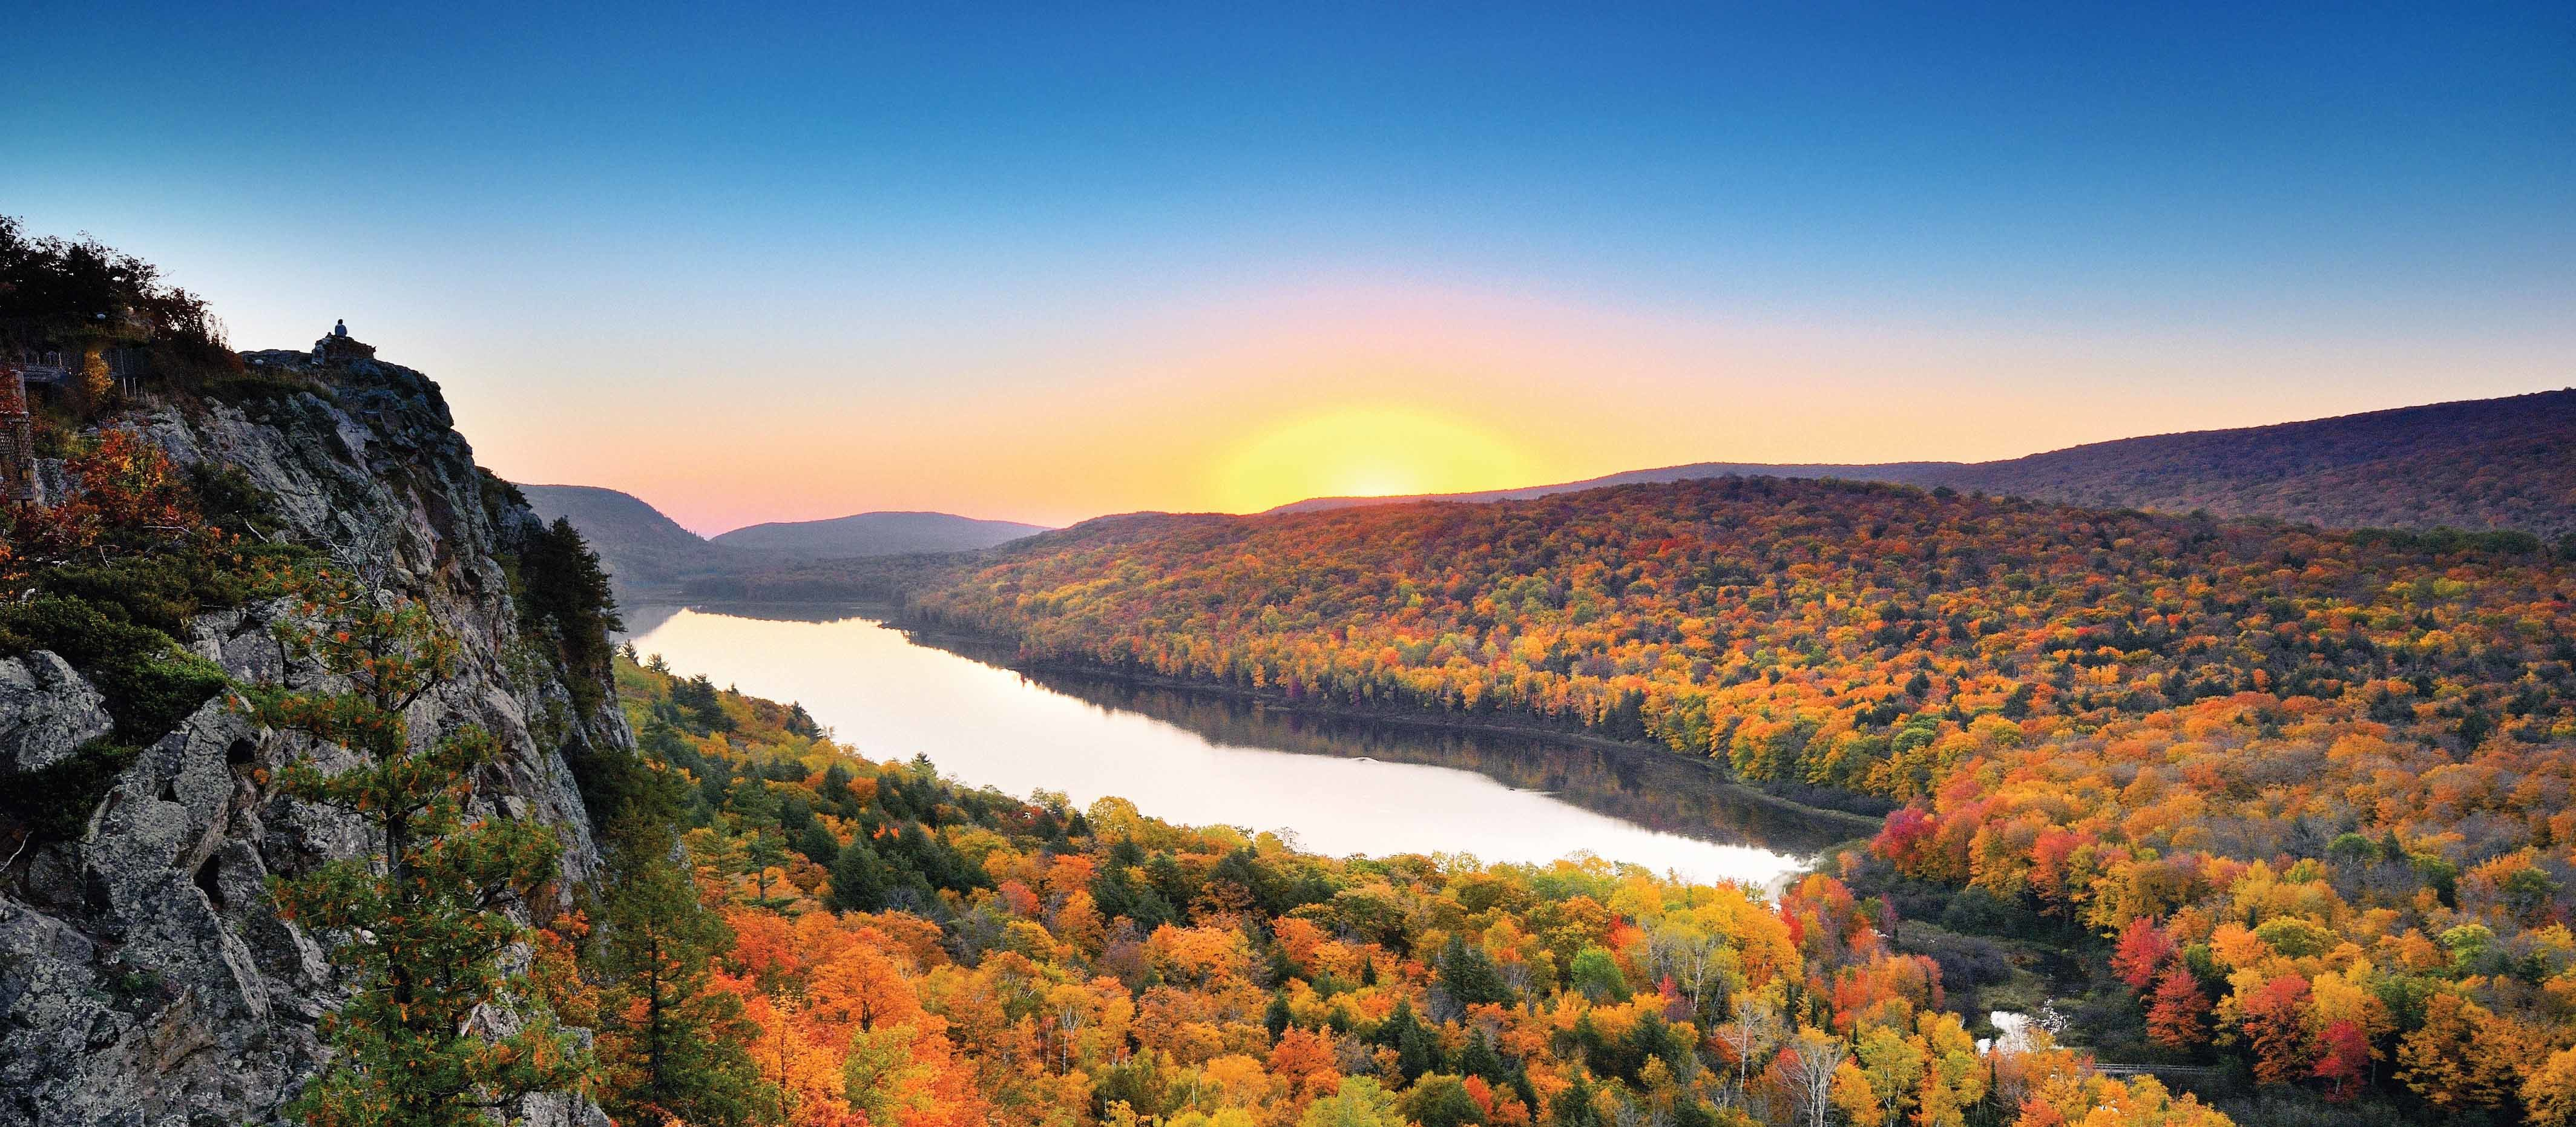 Lake of the Clouds in US-Bundesstaat Michigan im Herbst